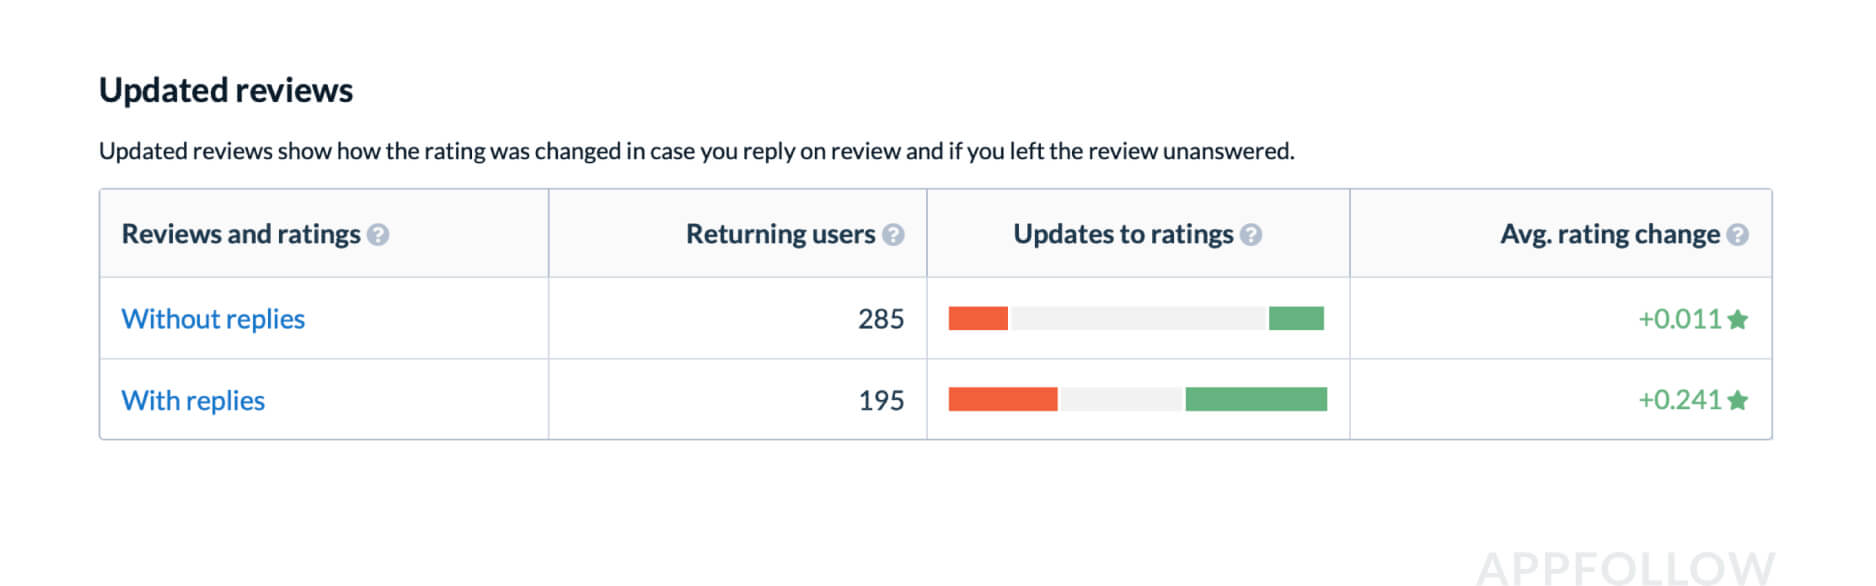 You don't have to reply to all reviews to increase your rating. The main thing is to tackle critical reviews (long or negative reviews, or ones with a decreased rating). Source: appfollow.io